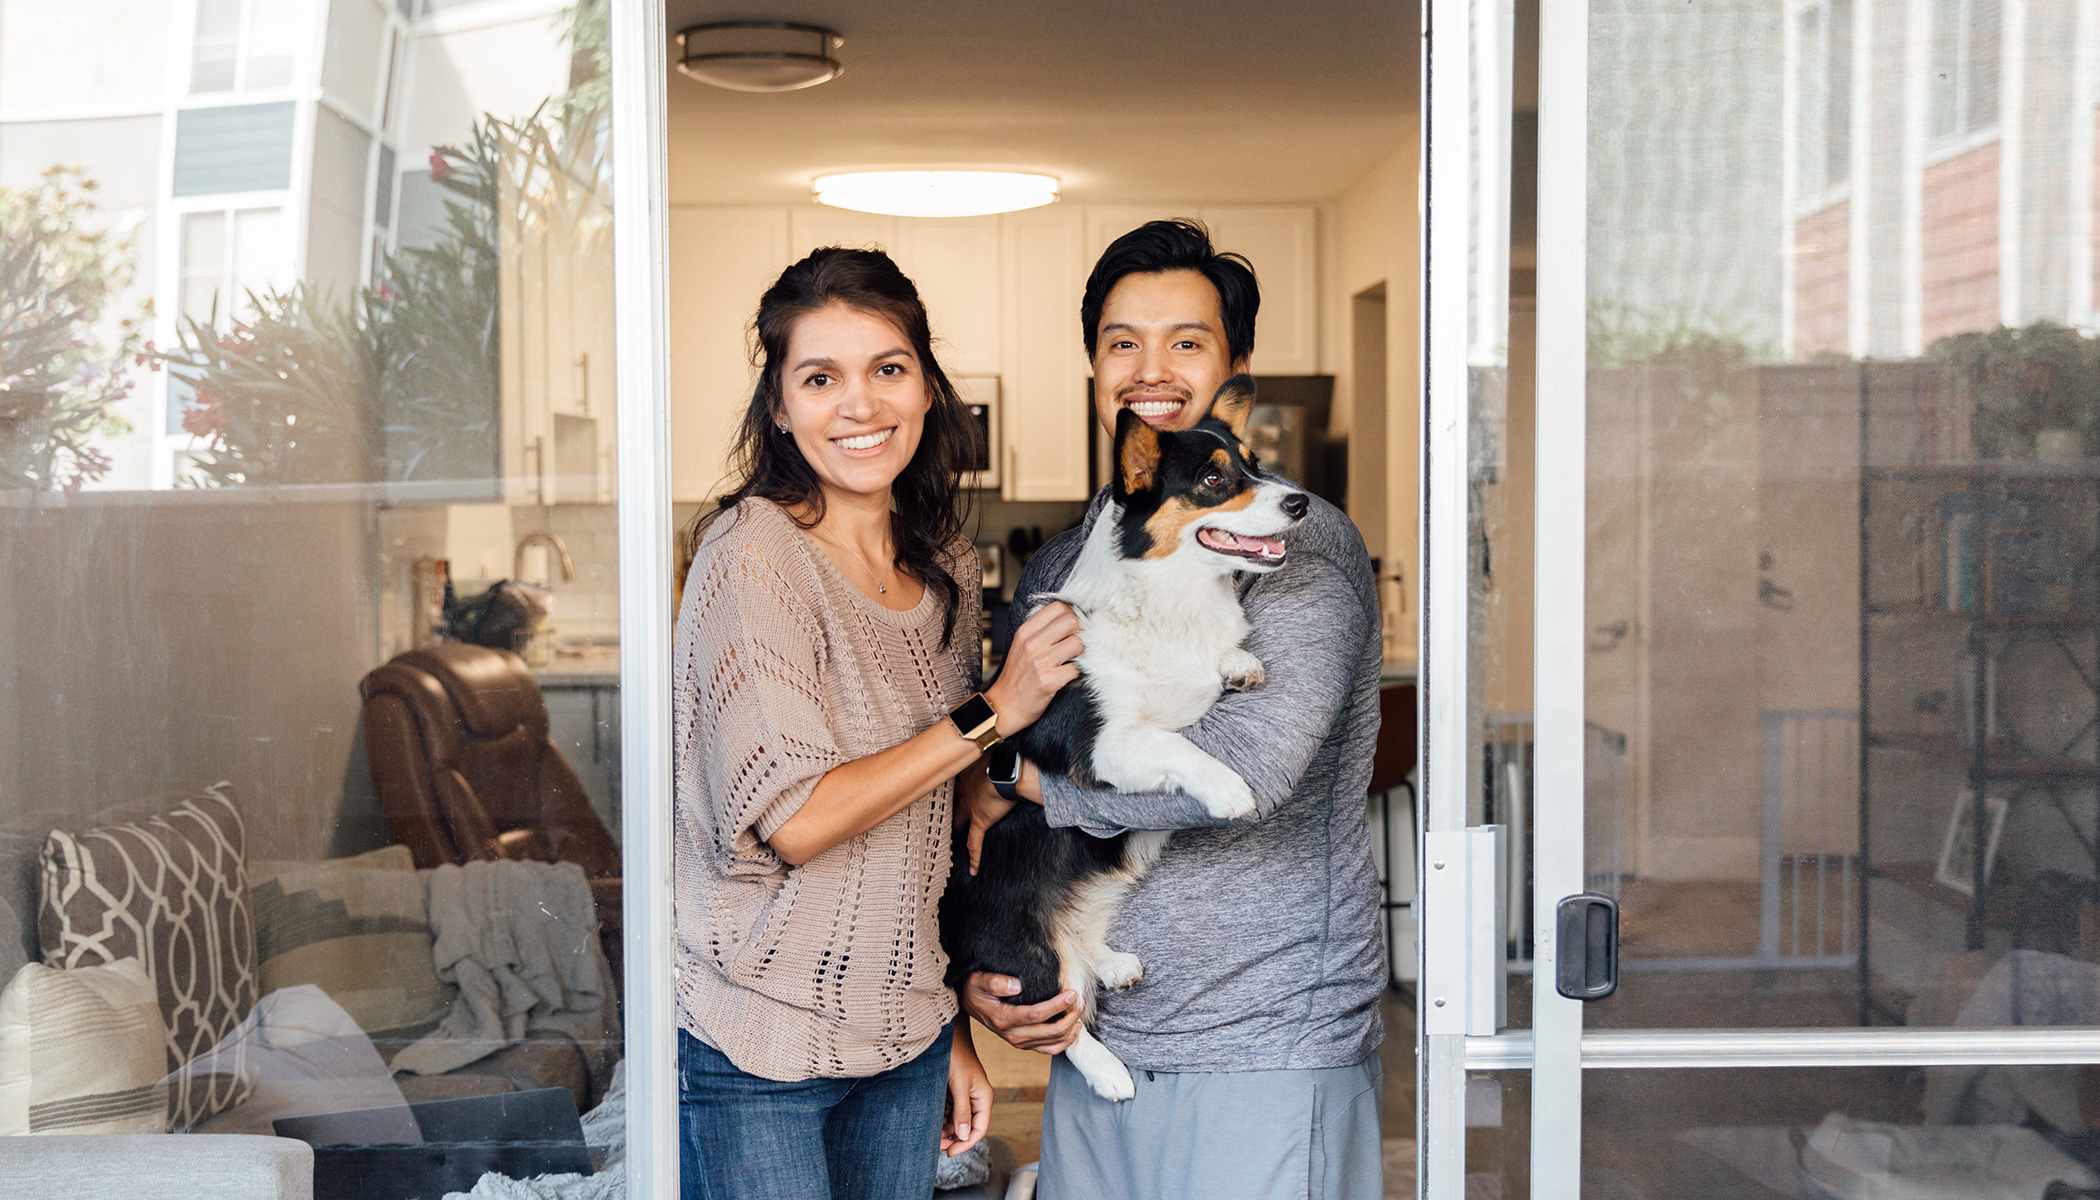 A women smiles and stands close to a man who is holding a Corgi.